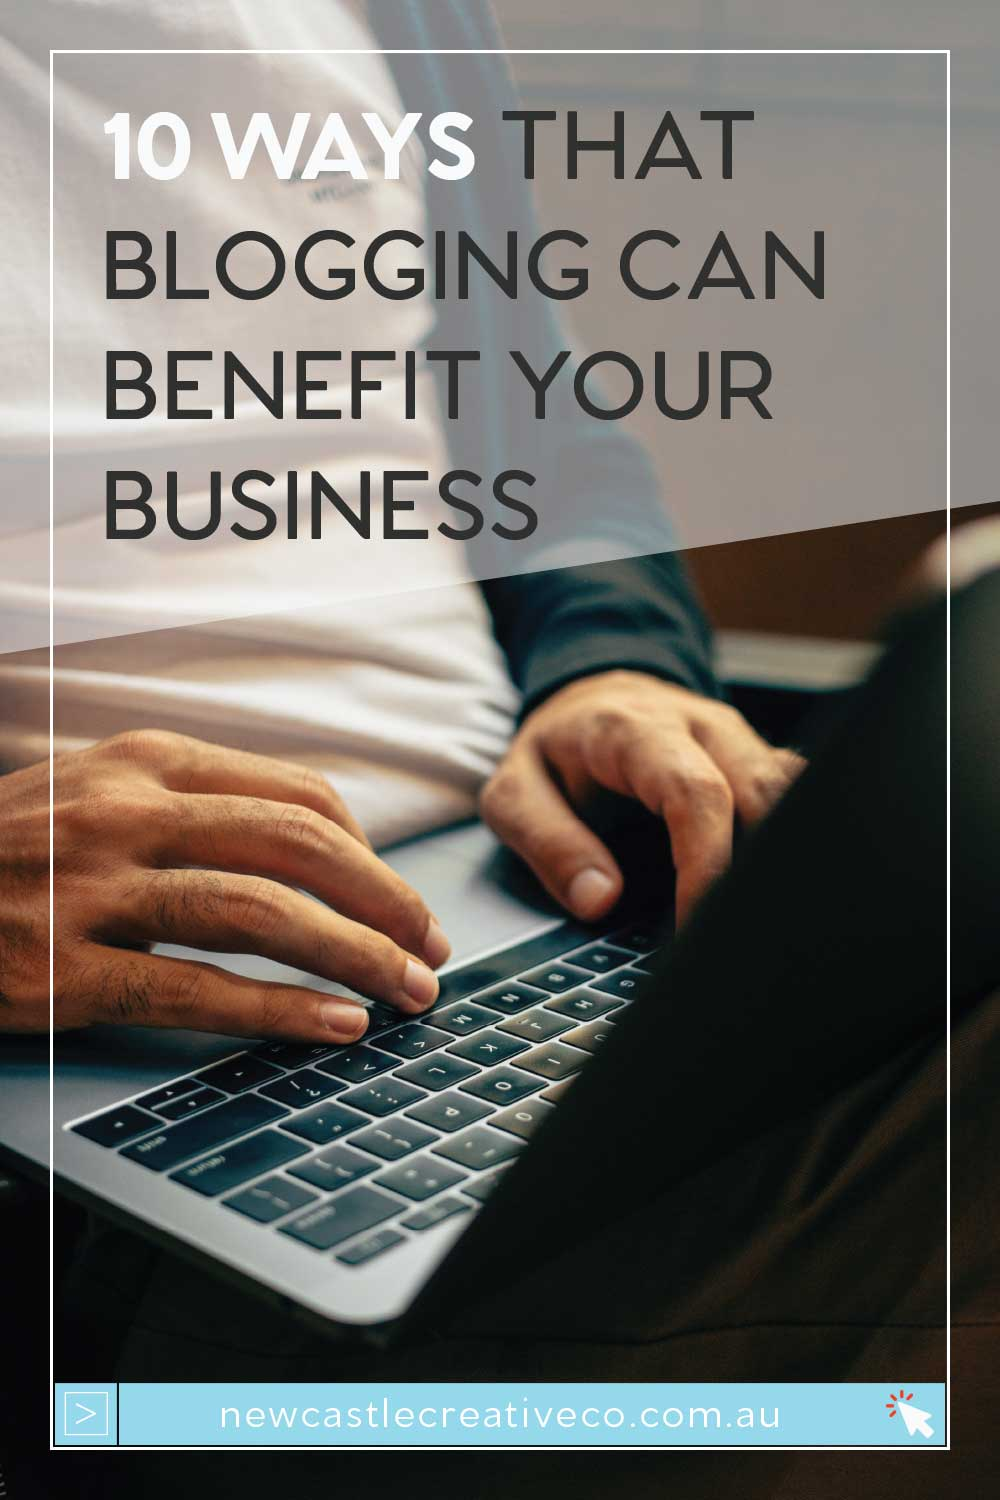 10 Ways that Blogging can benefit your business | Newcastle Creative Co